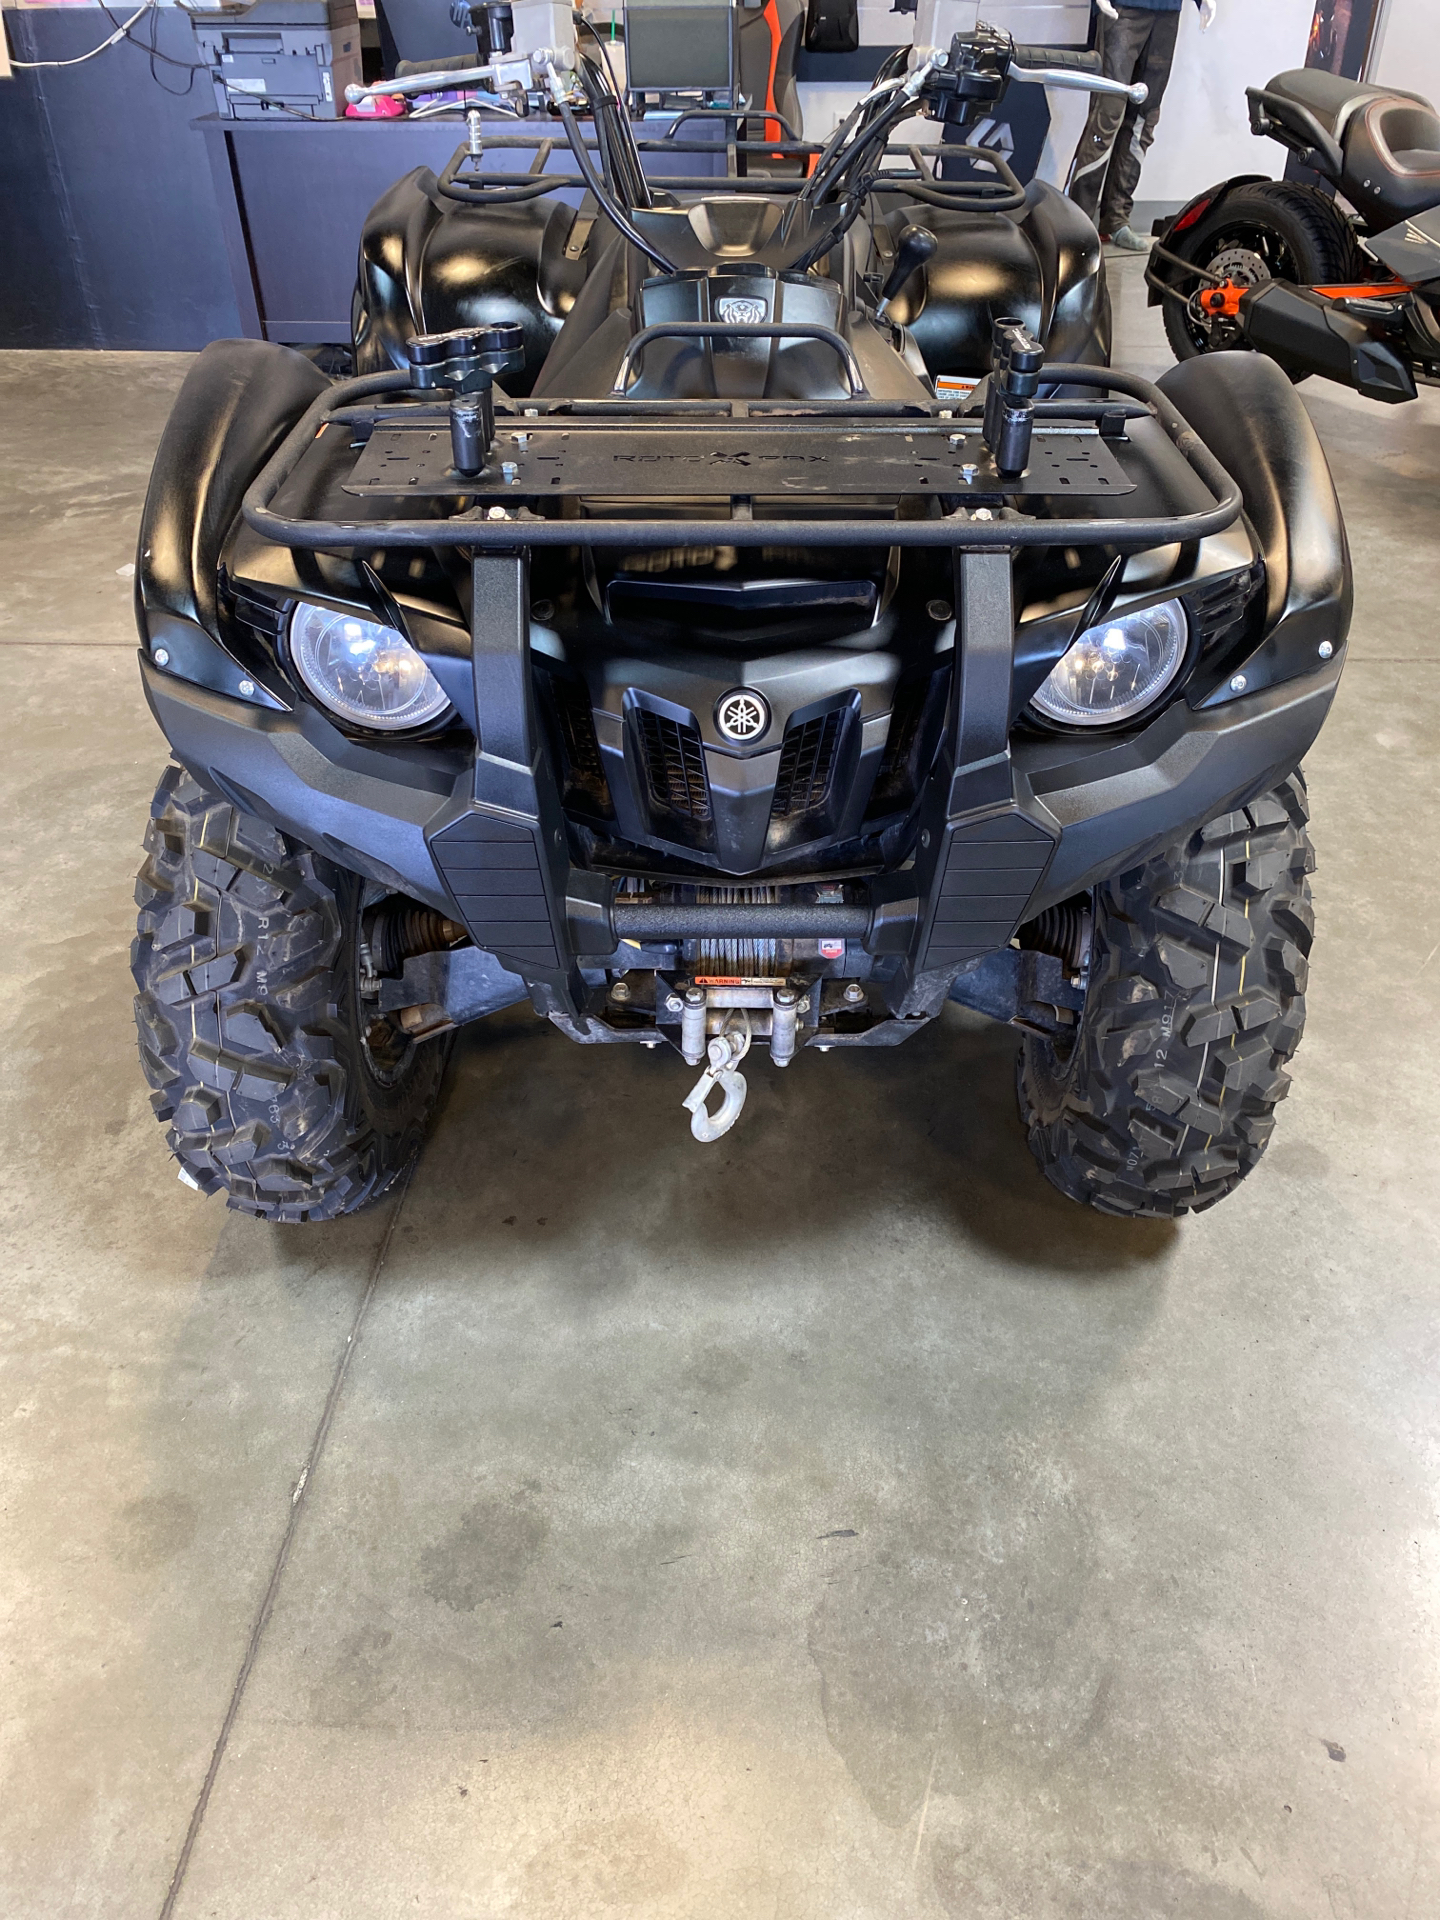 2013 Yamaha Grizzly 700 FI Auto. 4x4 EPS Special Edition in Las Vegas, Nevada - Photo 1